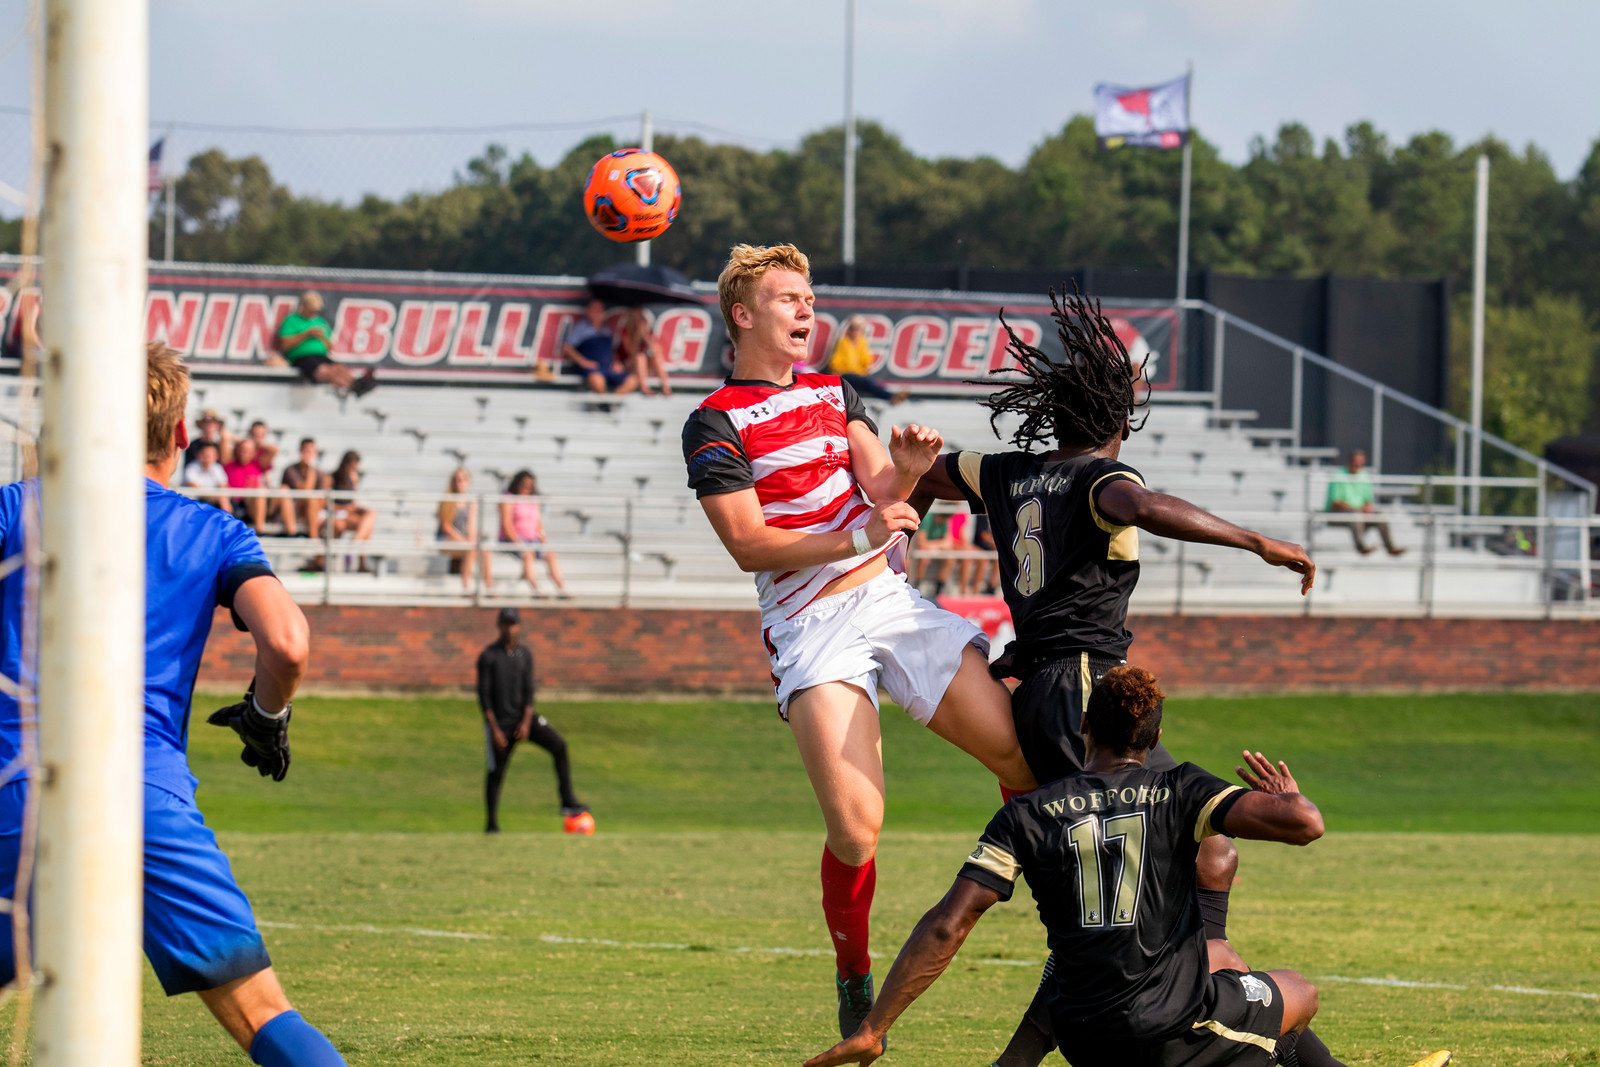 GWU Men's Soccer vs. Wofford Sept. 2017